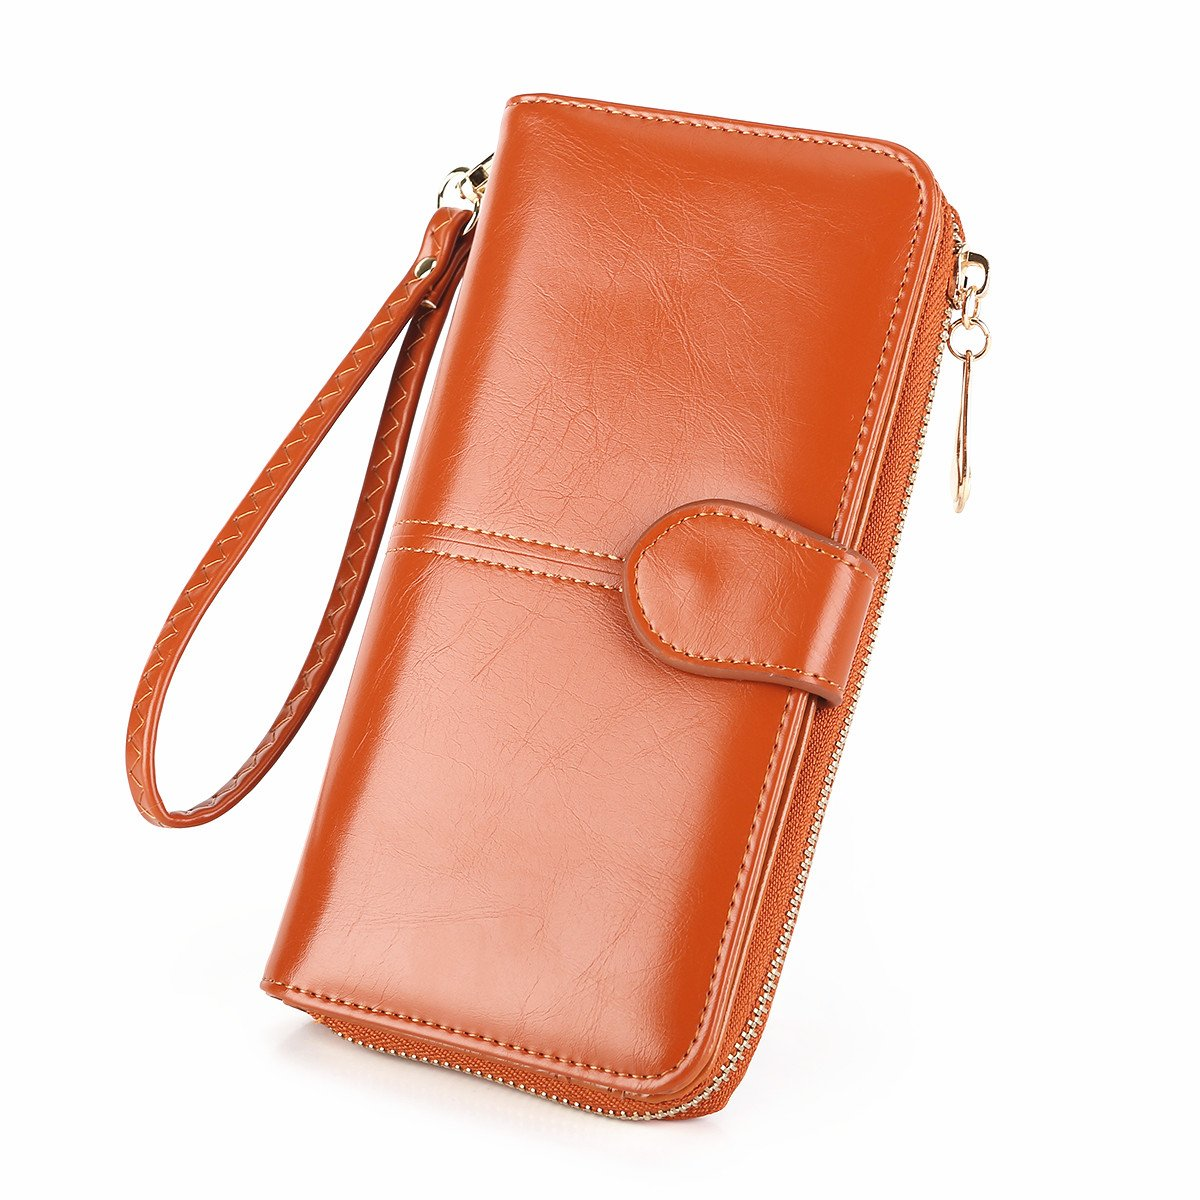 Women's Wallet Long Handbag RFID Blocking Large Capacity Purse Luxry Waxed Leather Clutch Case Bifold Multi Card Organizer Wristlet Strap - Laimi Duo (Brown)